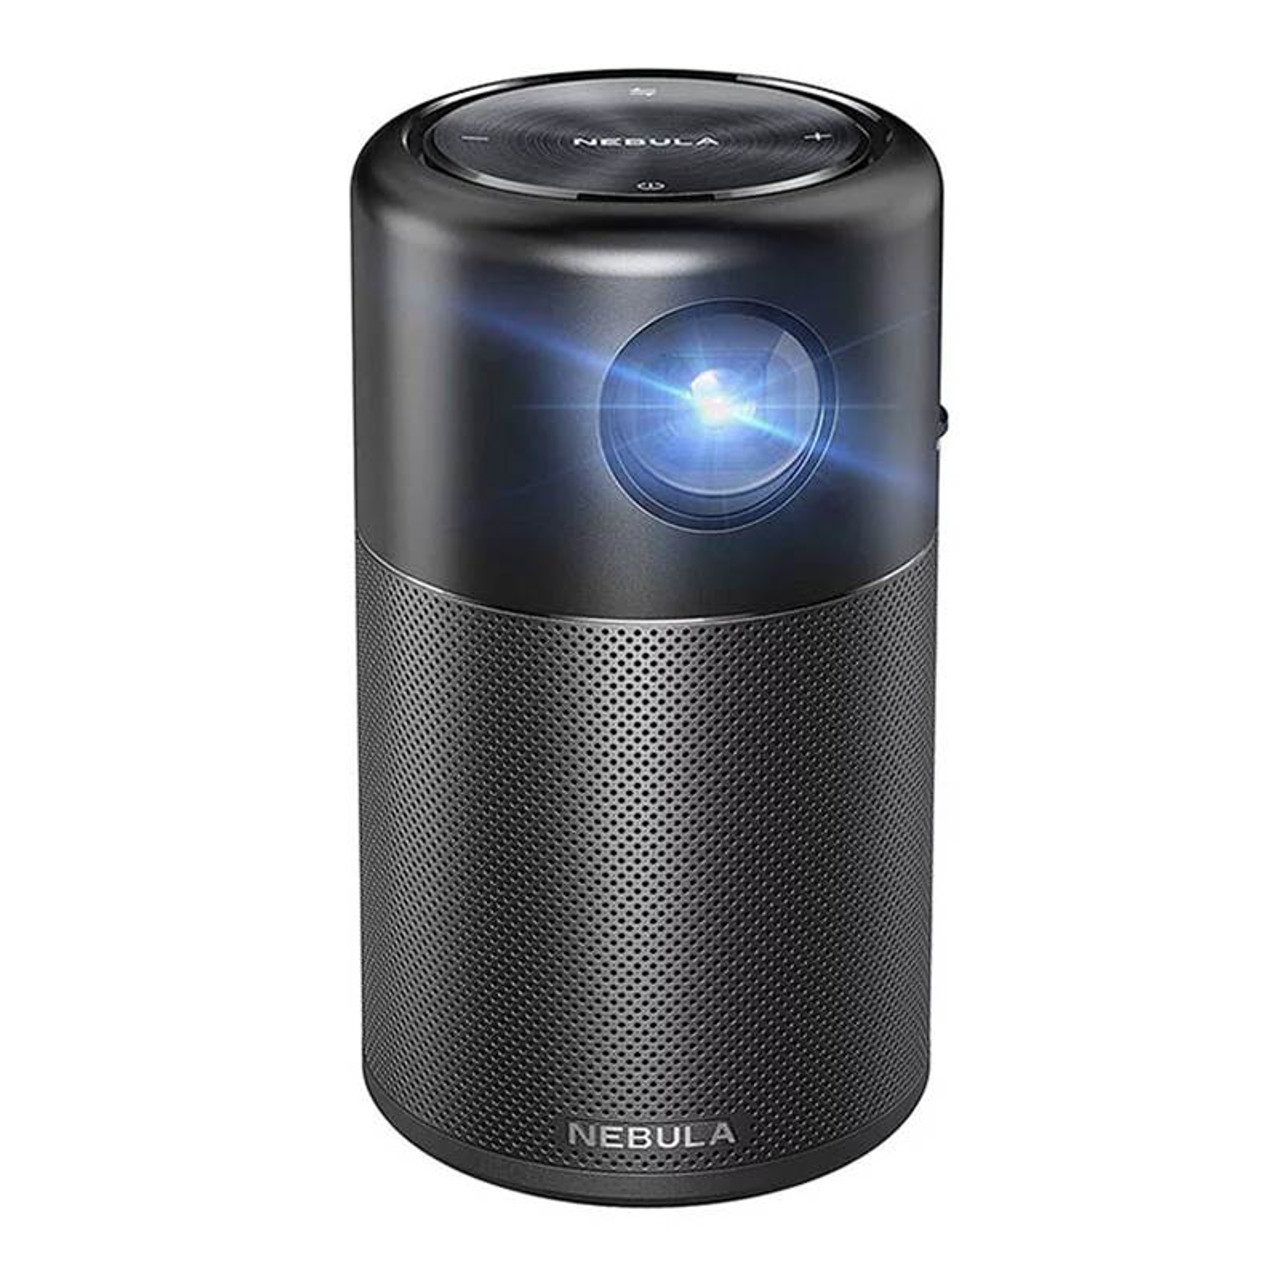 Image for Anker Nebula Capsule FWVGA Portable Wireless DLP Projector CX Computer Superstore